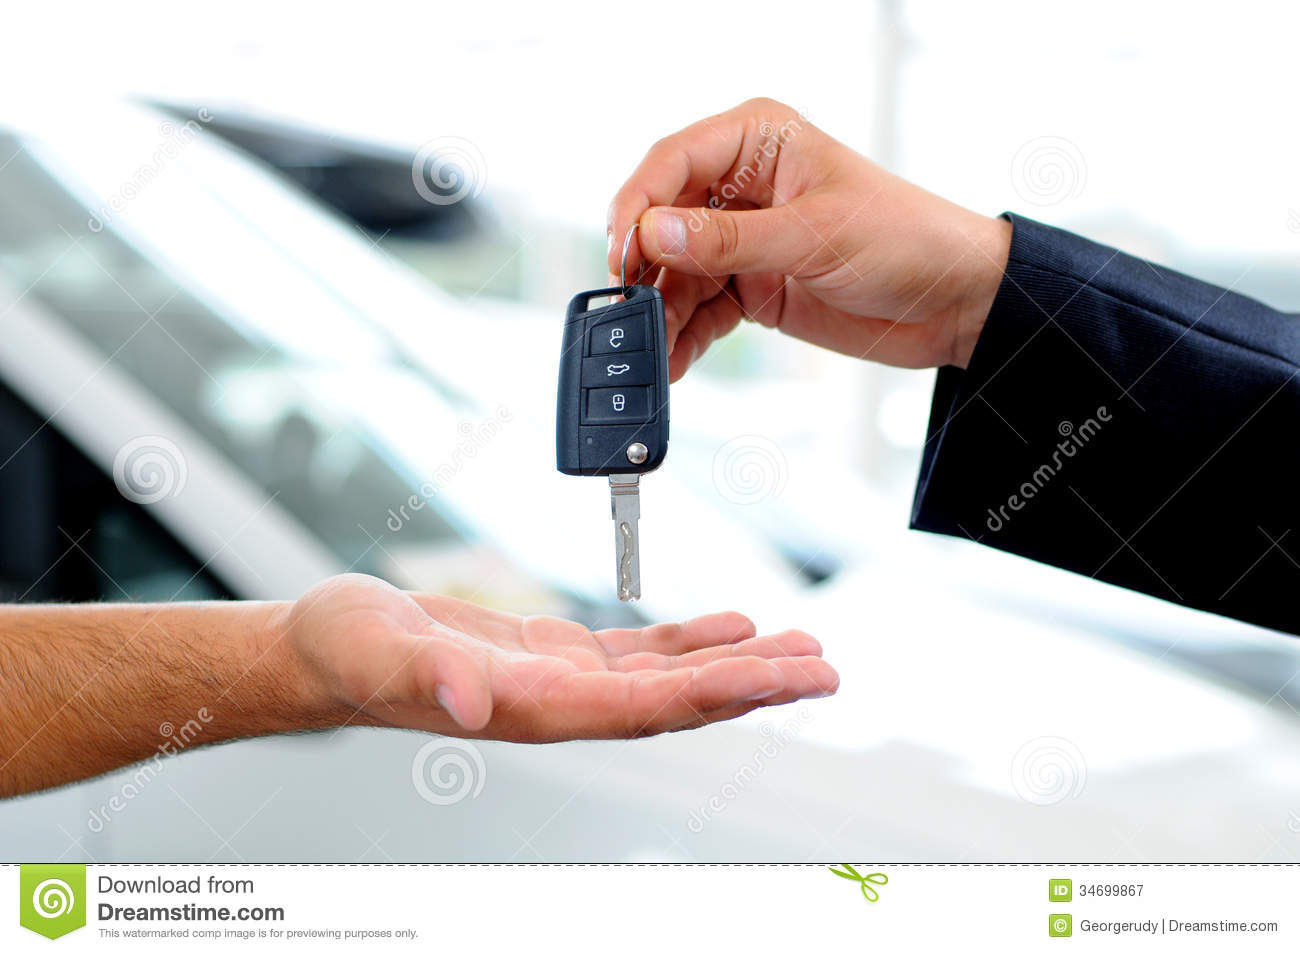 Customer Rights When Buying A New Car